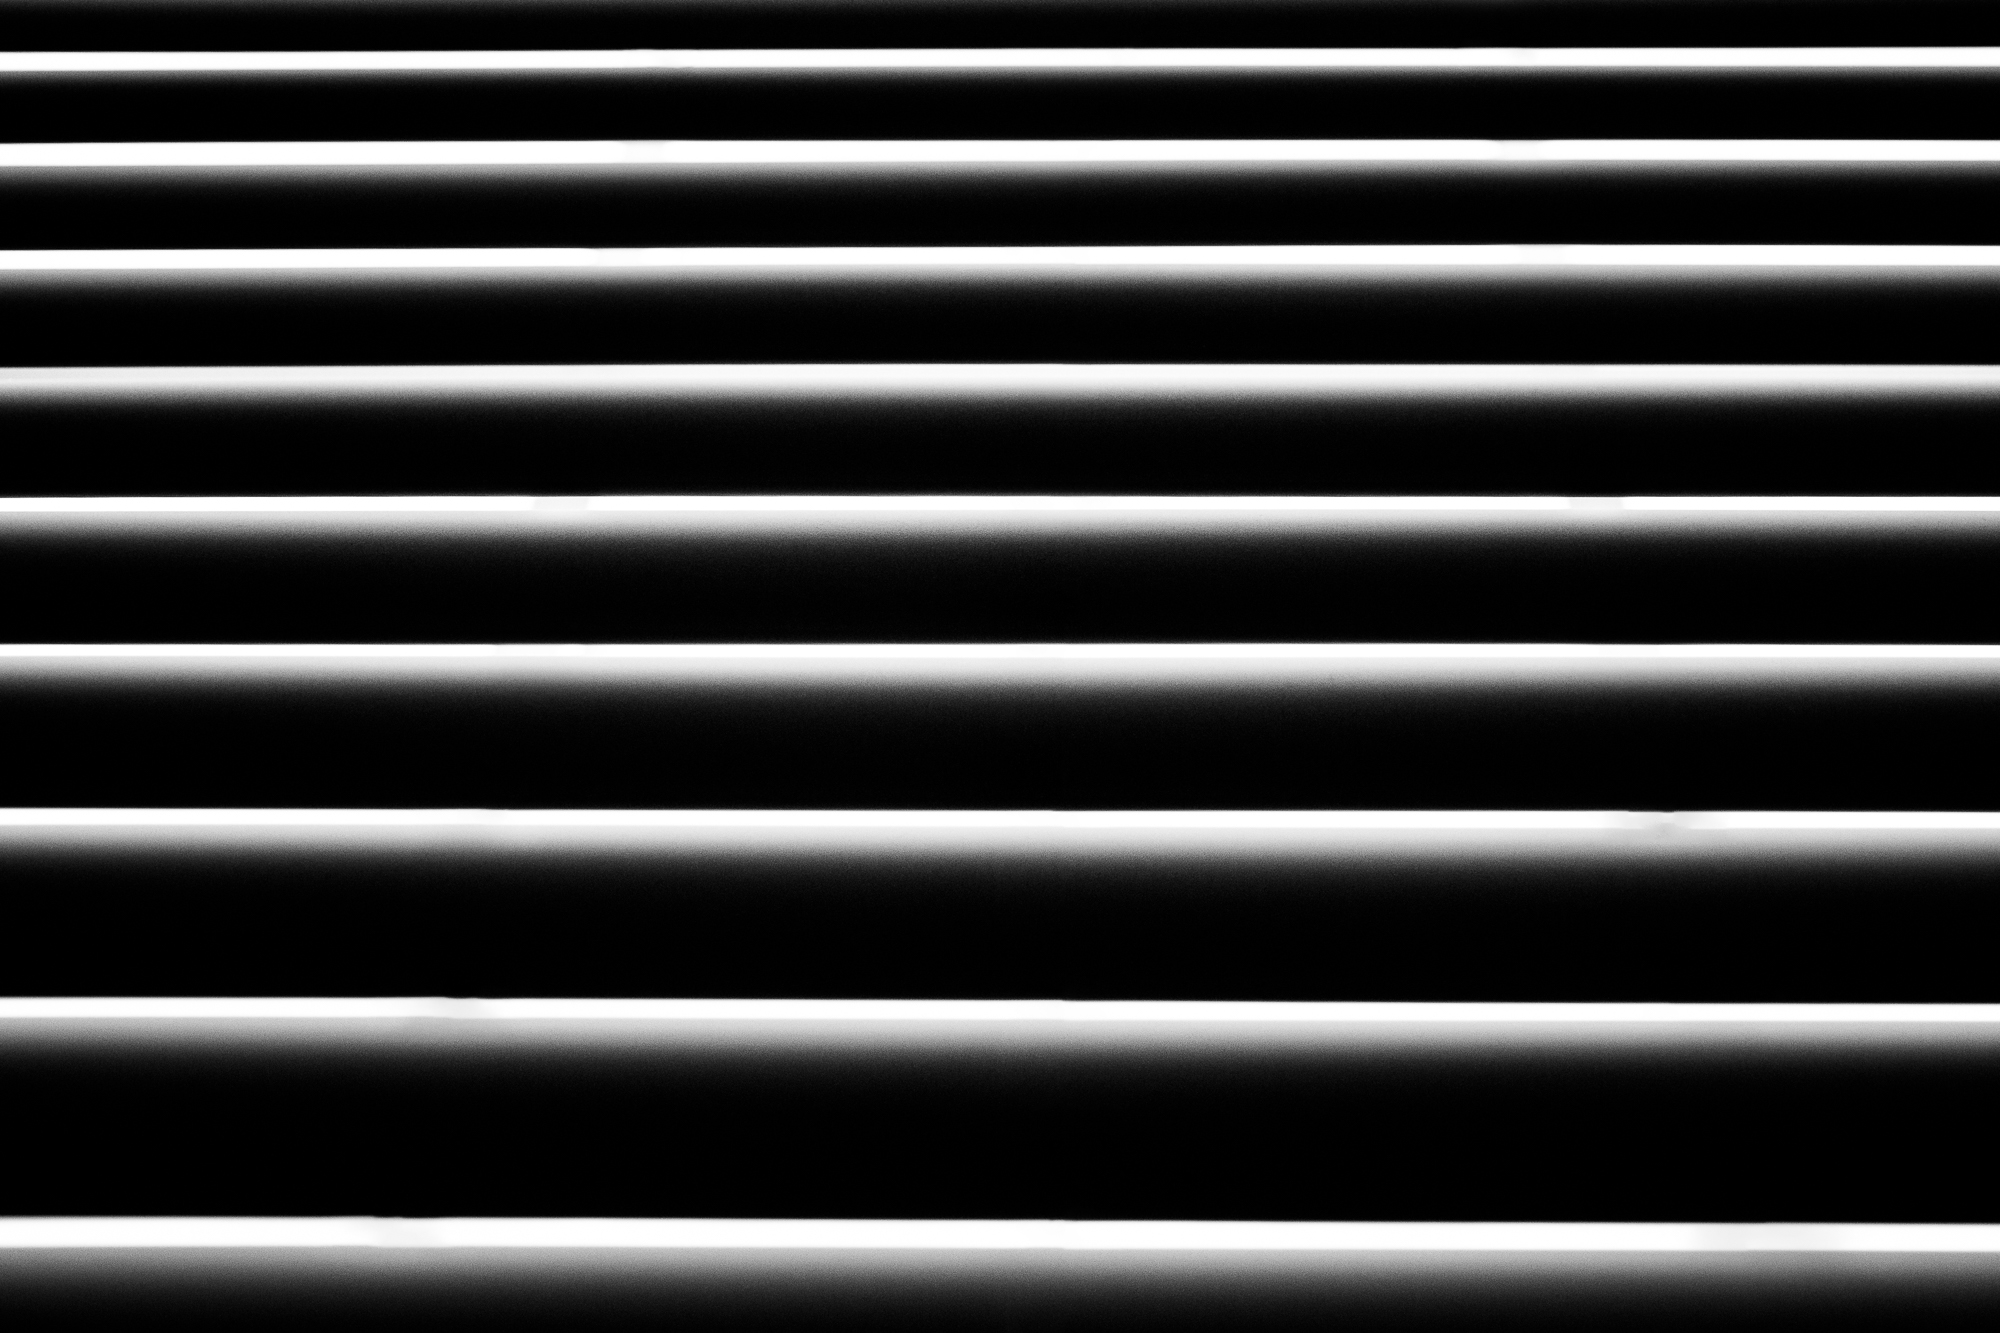 BW Abstract